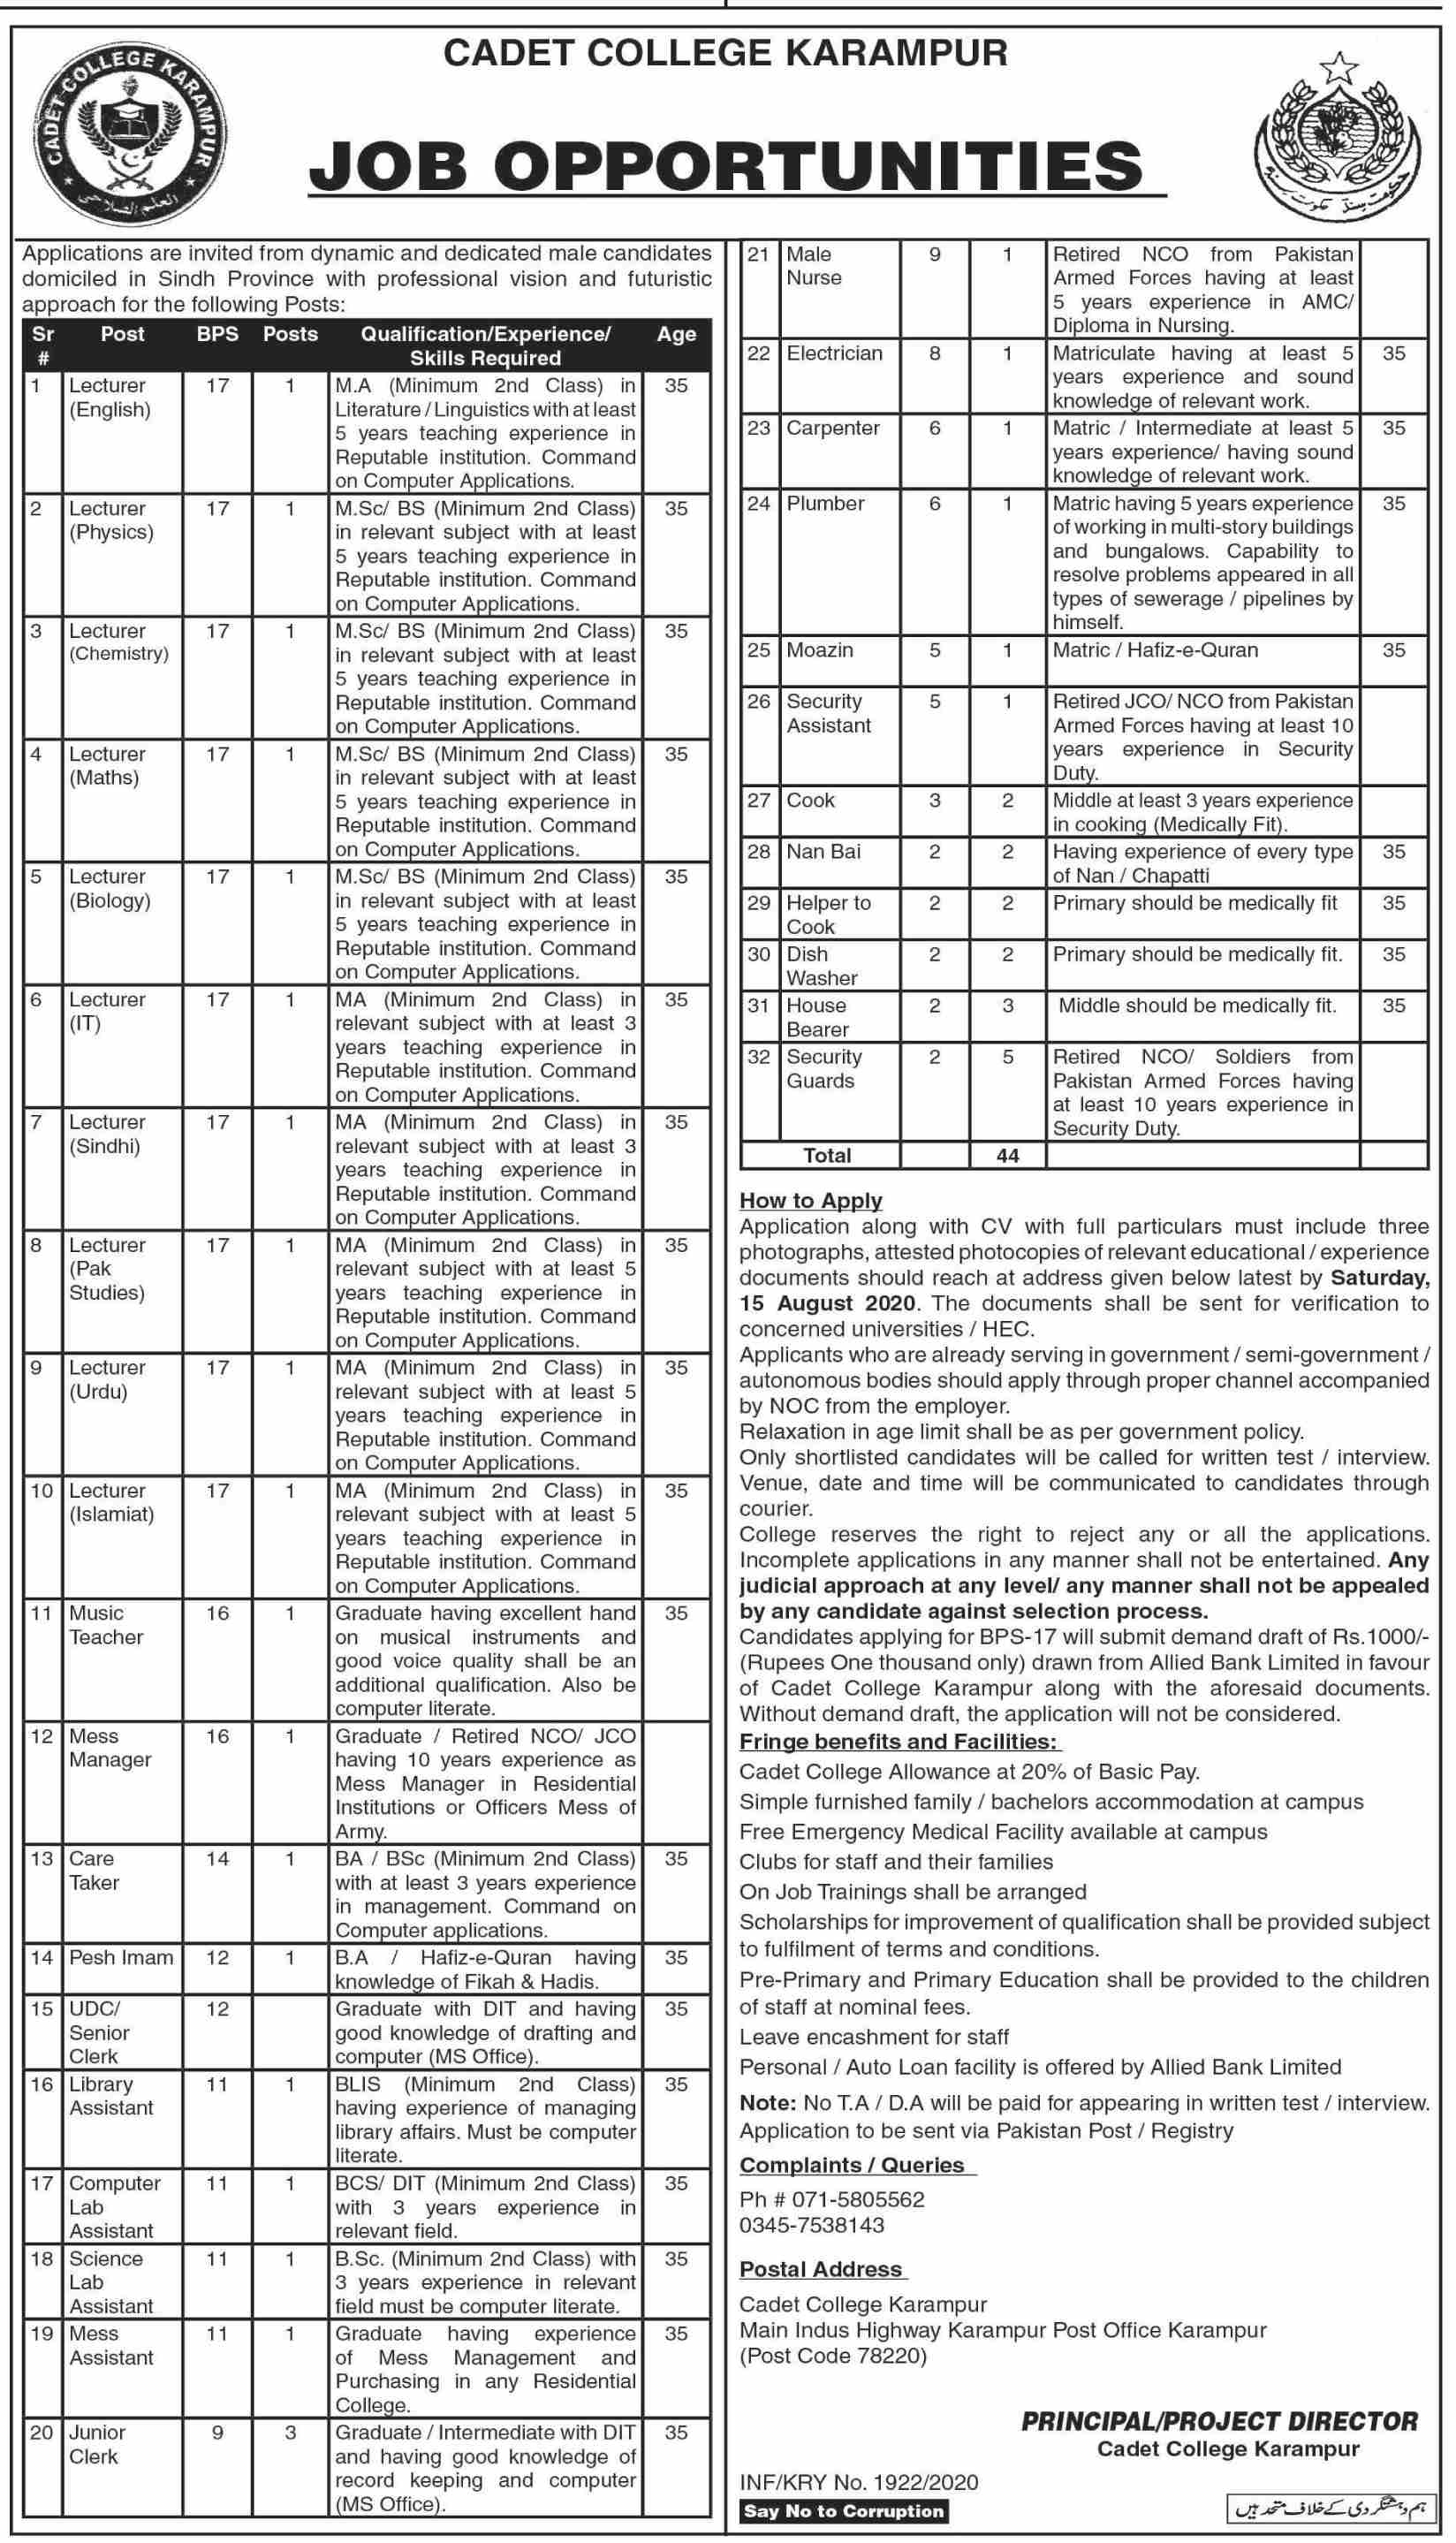 Cadet College jobs newspaper ad for Pesh Imam in Karampur